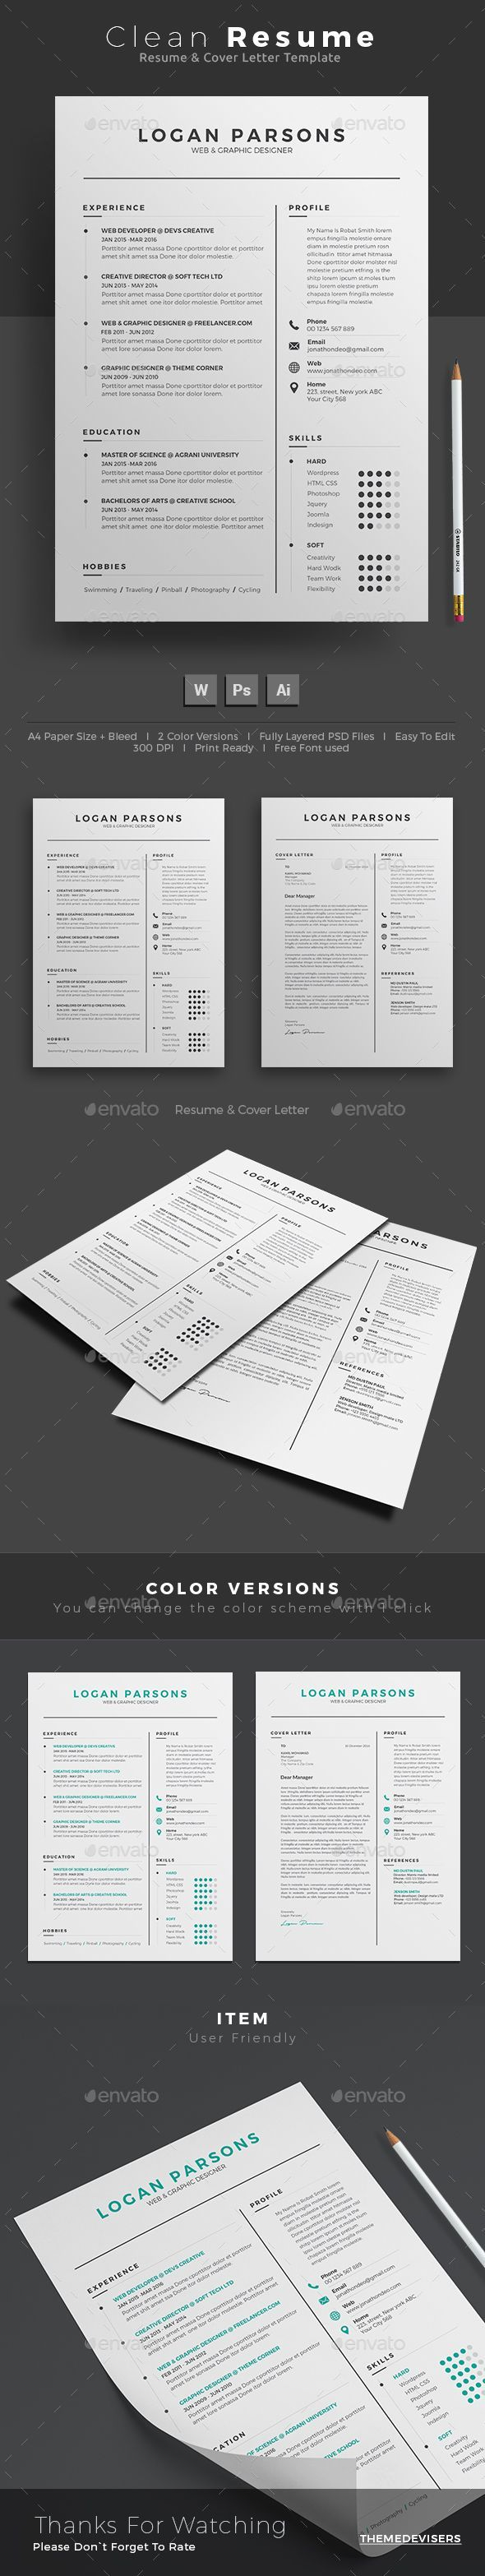 Resume Template PSD, AI Illustrator, MS Word. Download here: https ...